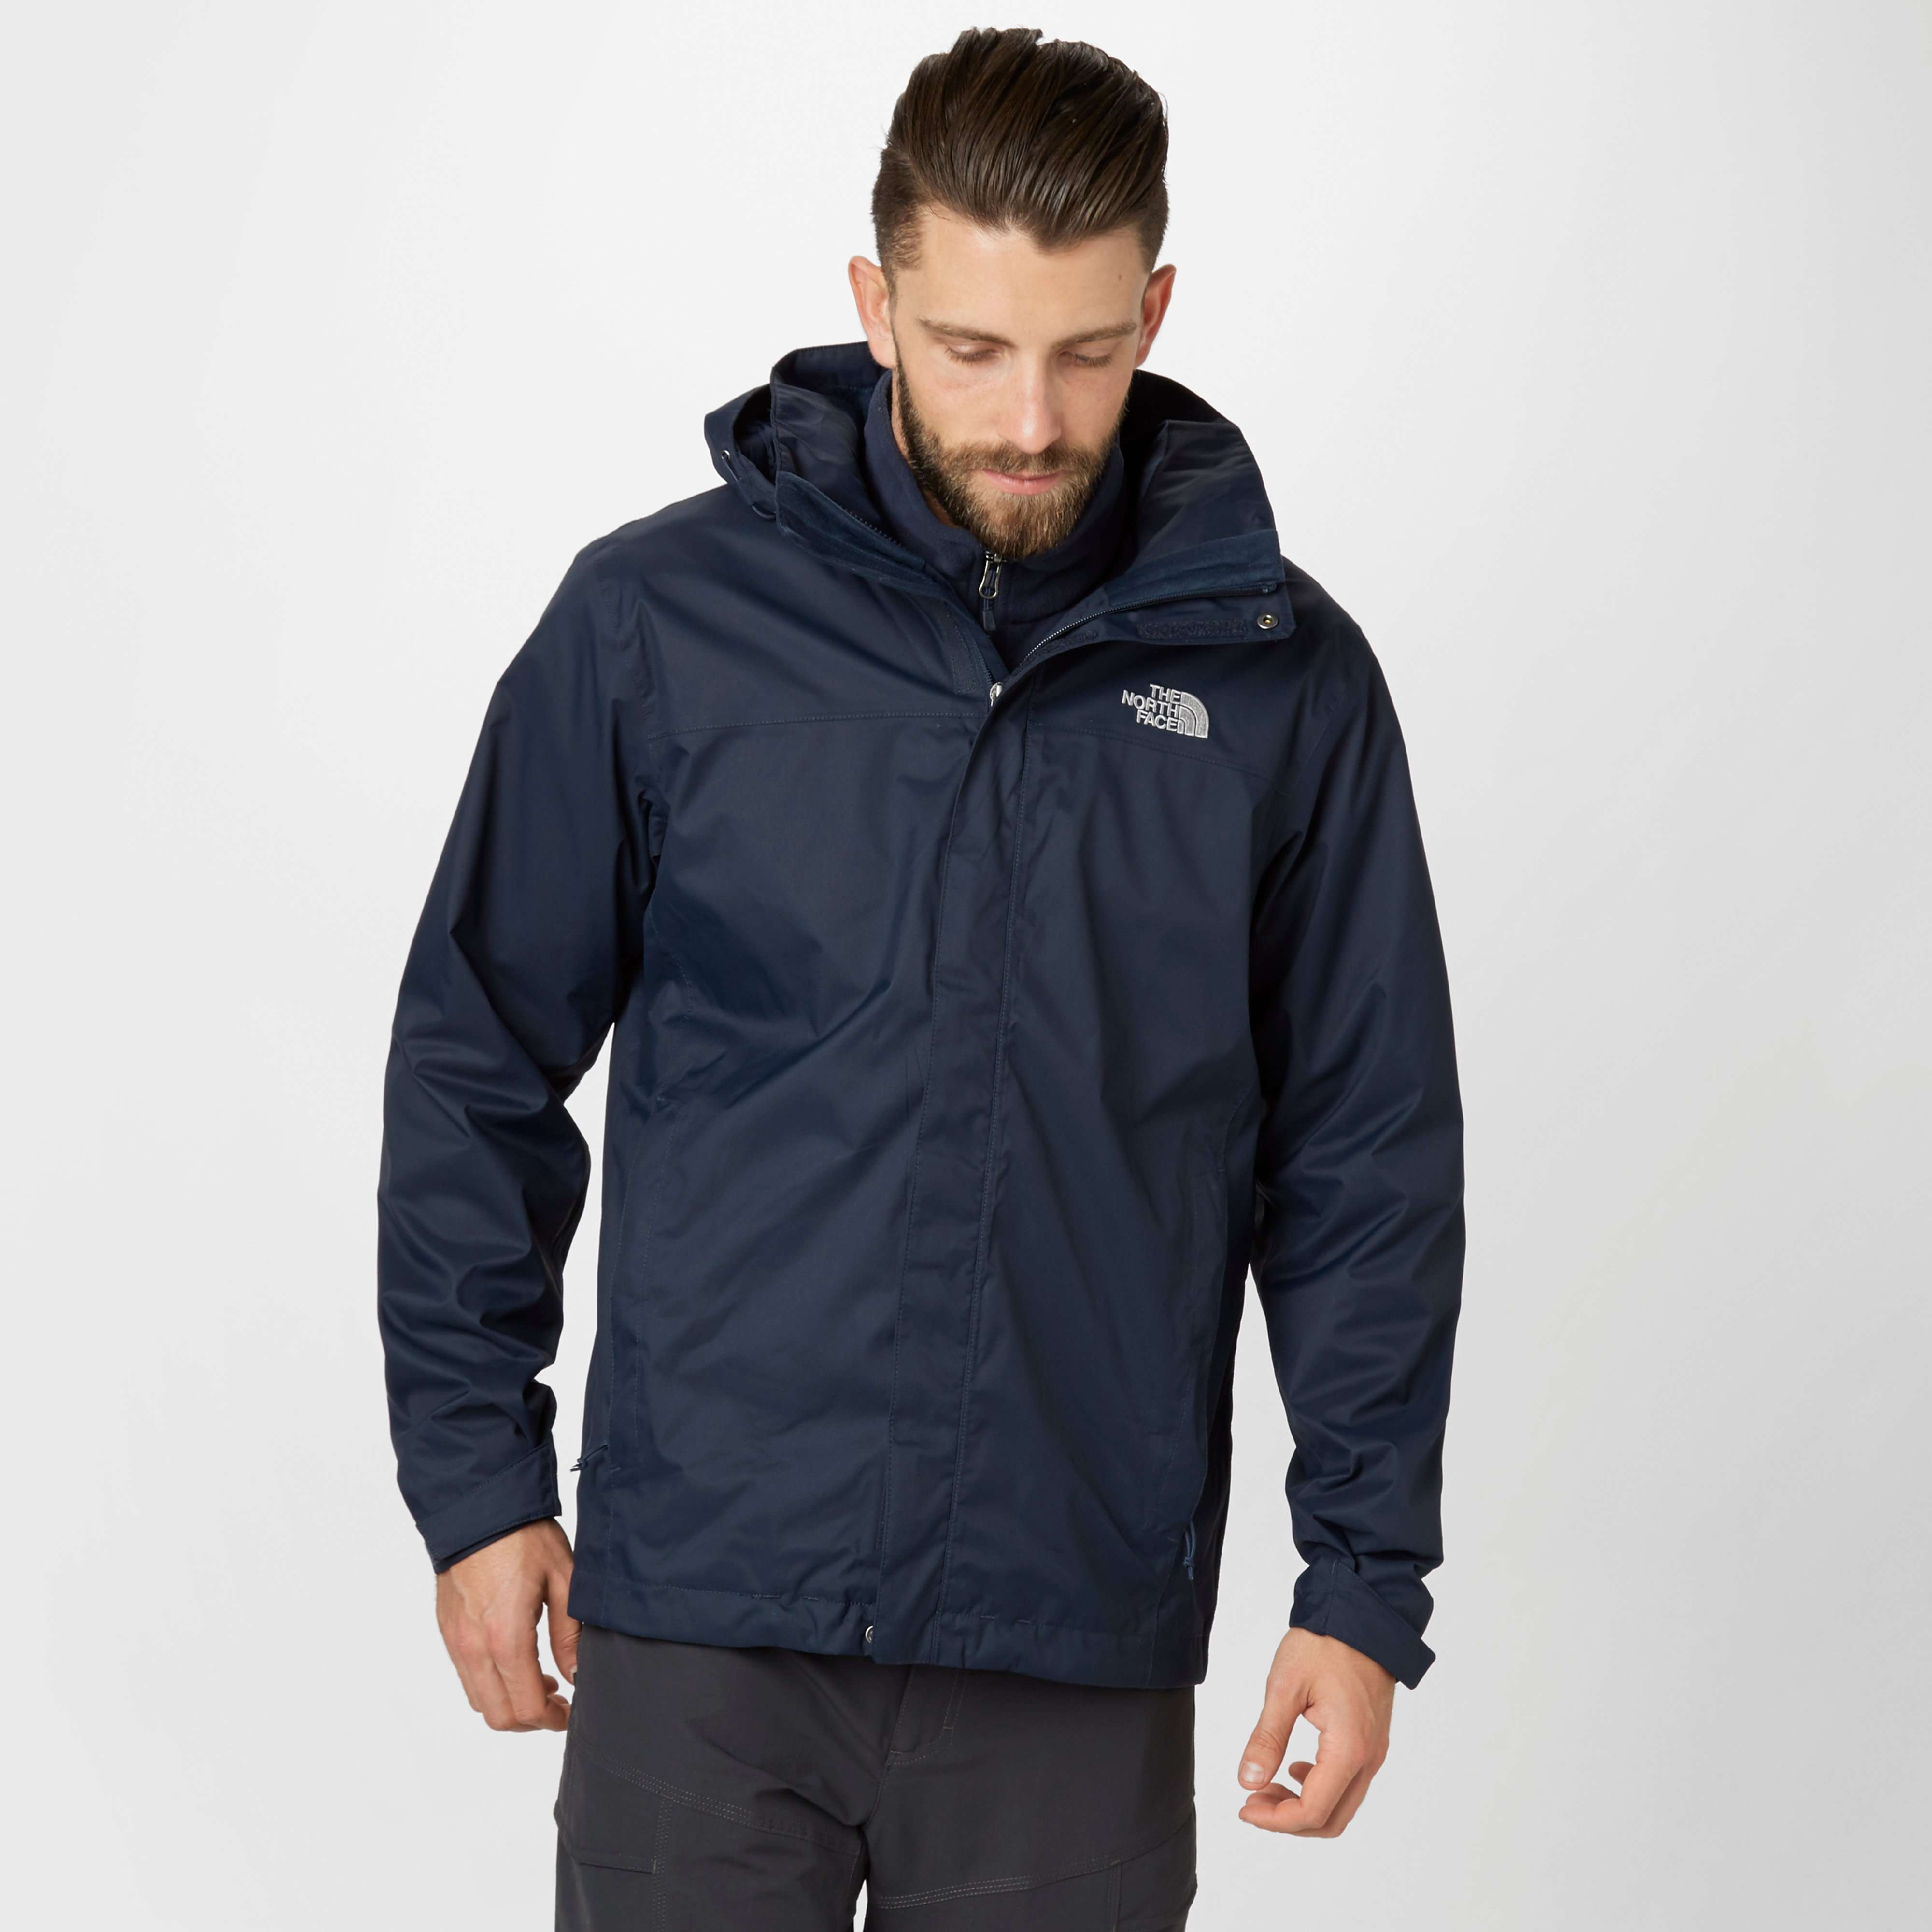 THE NORTH FACE Men's Evolve II Triclimate 3 in 1 Jacket